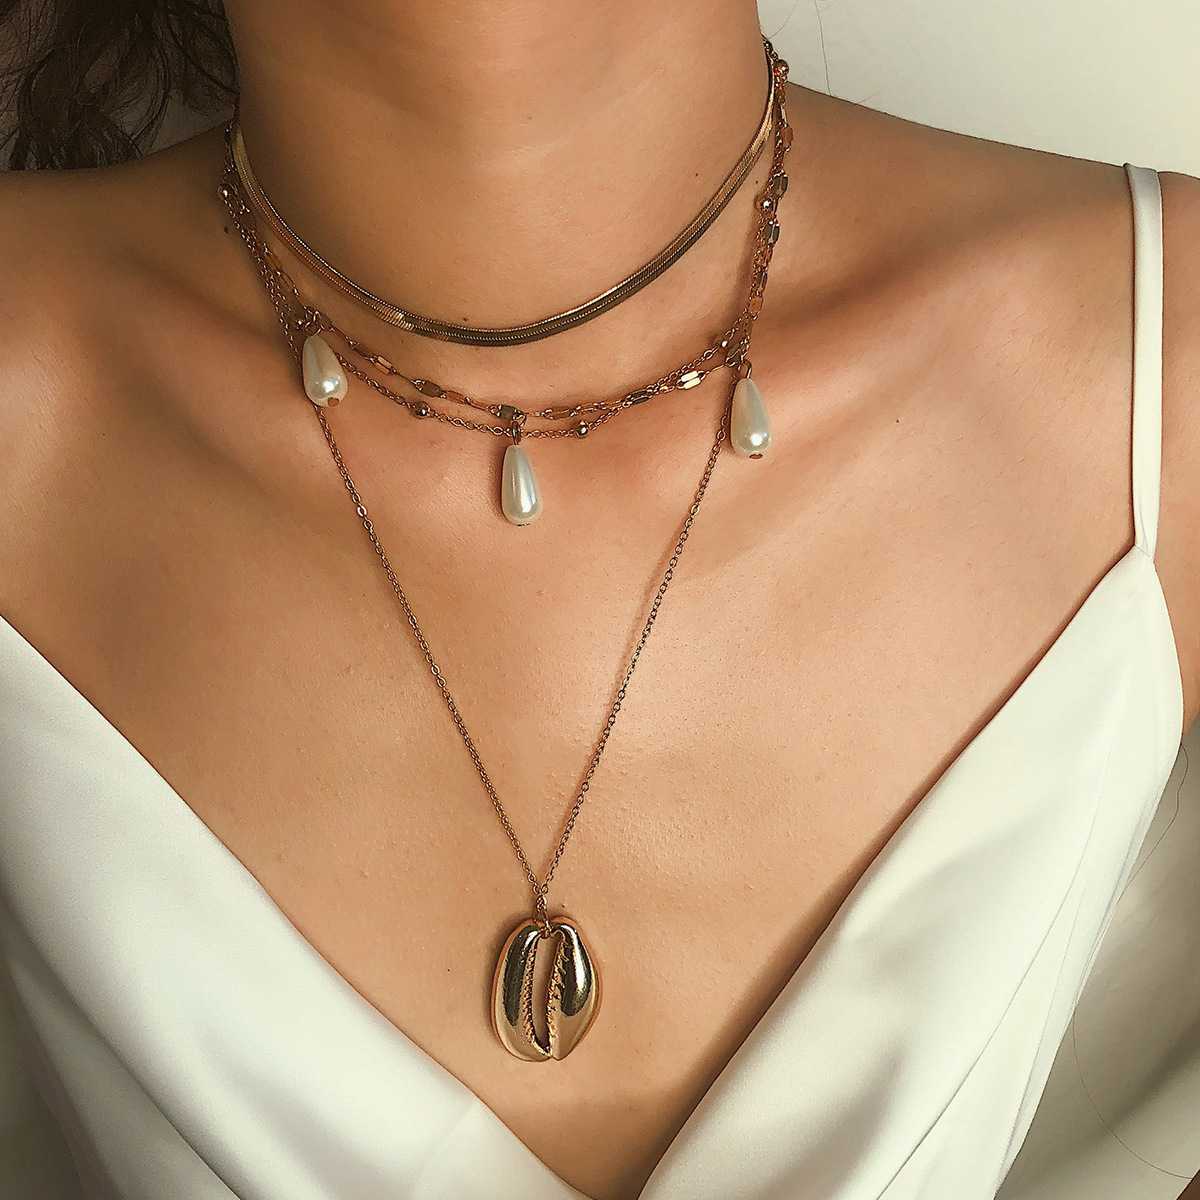 2019 New Fashion Imitation Pearl Choker Necklace Women Gold Color Bead Cowrie Big Sea Shell Pendant Necklace Statement Collier